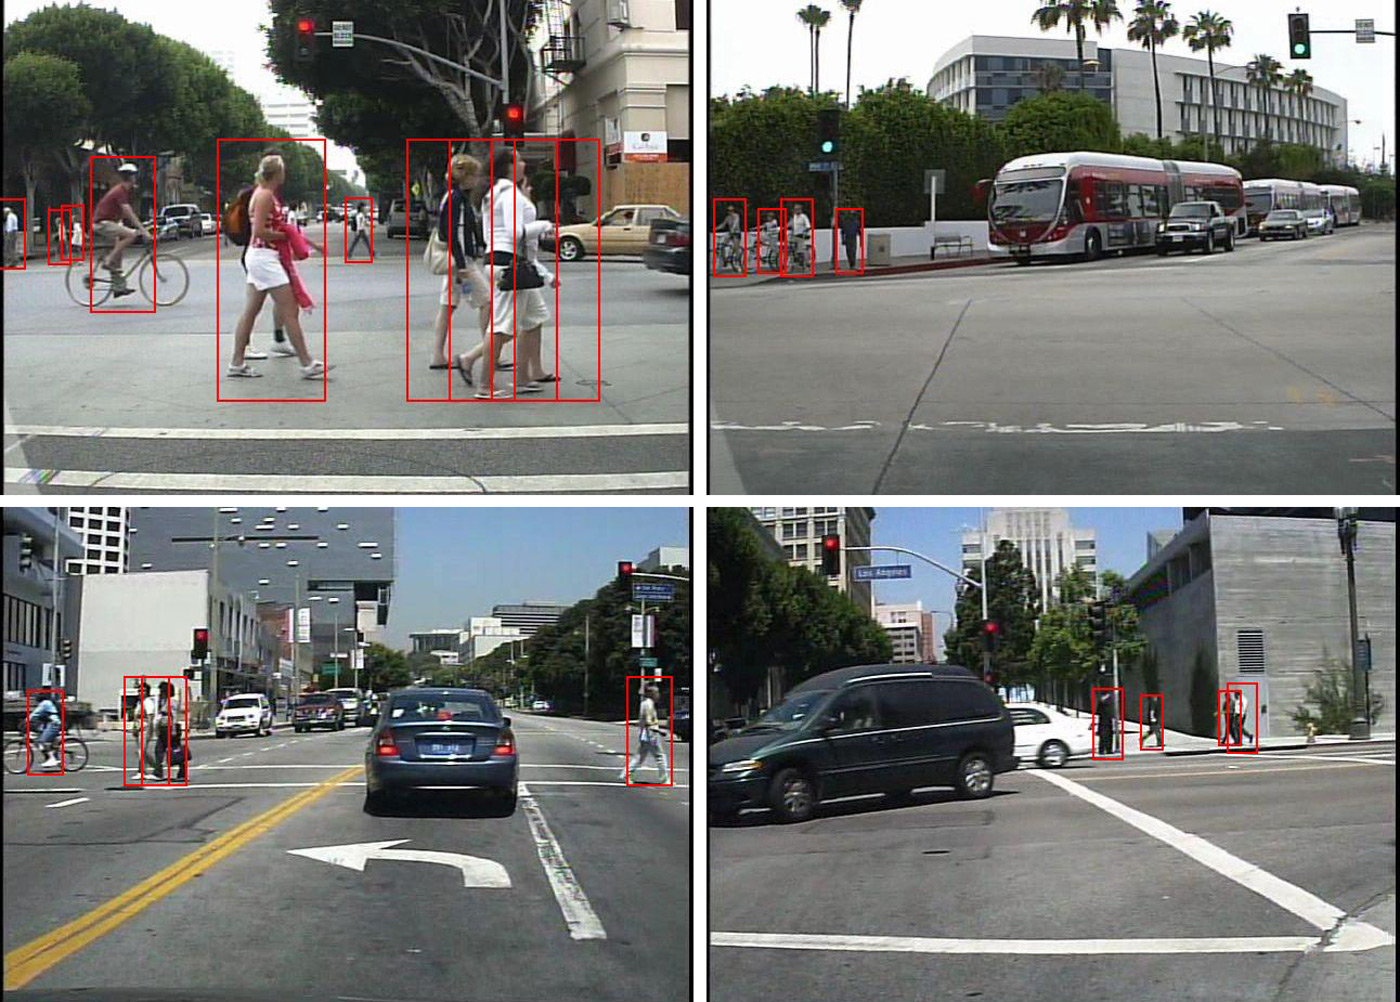 Smart car algorithm sees pedestrians as well as you can